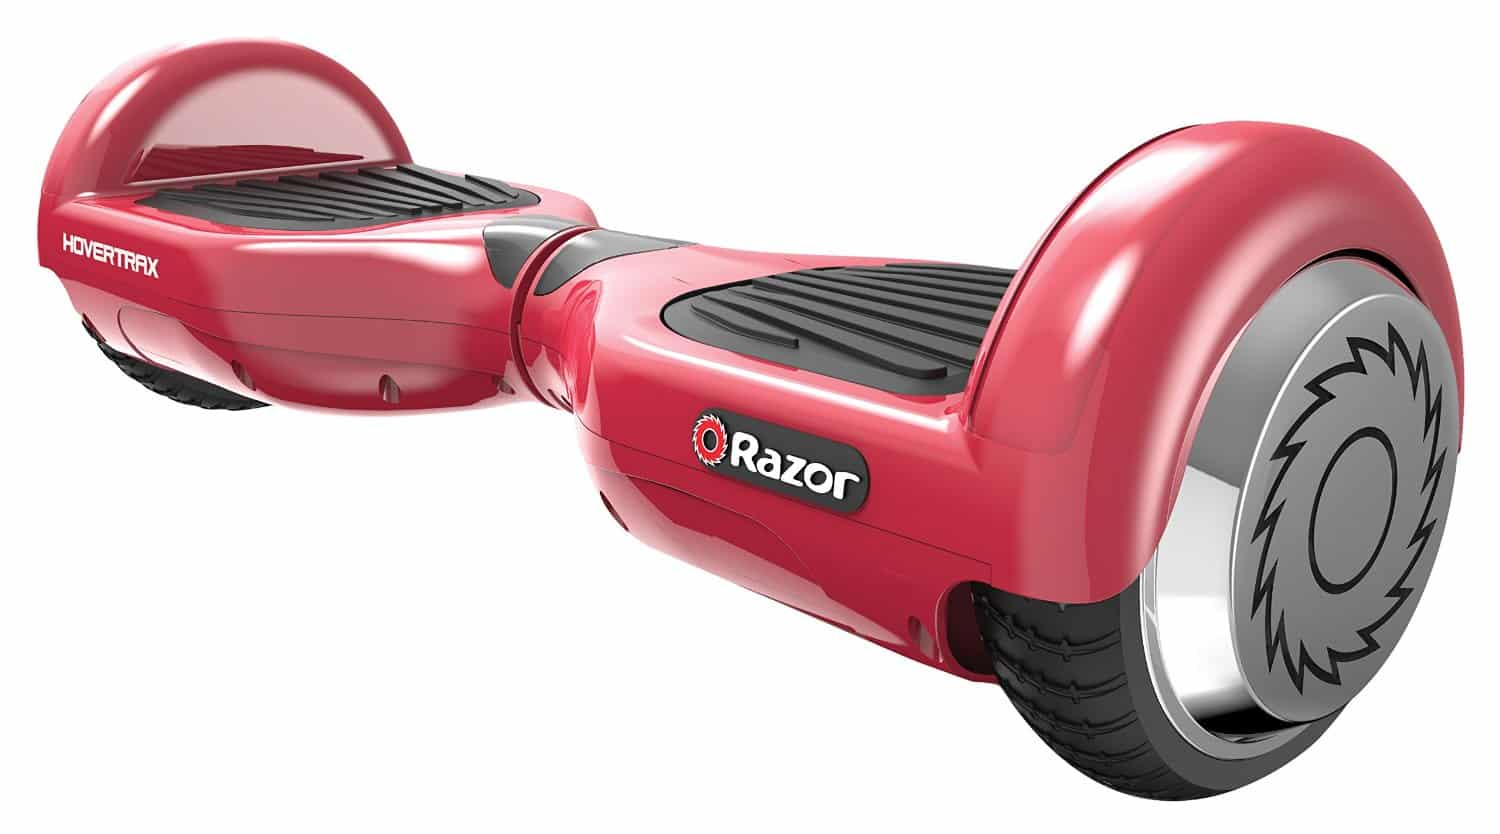 2. Razor Hovertrax Electric Self-Balancing Scooter